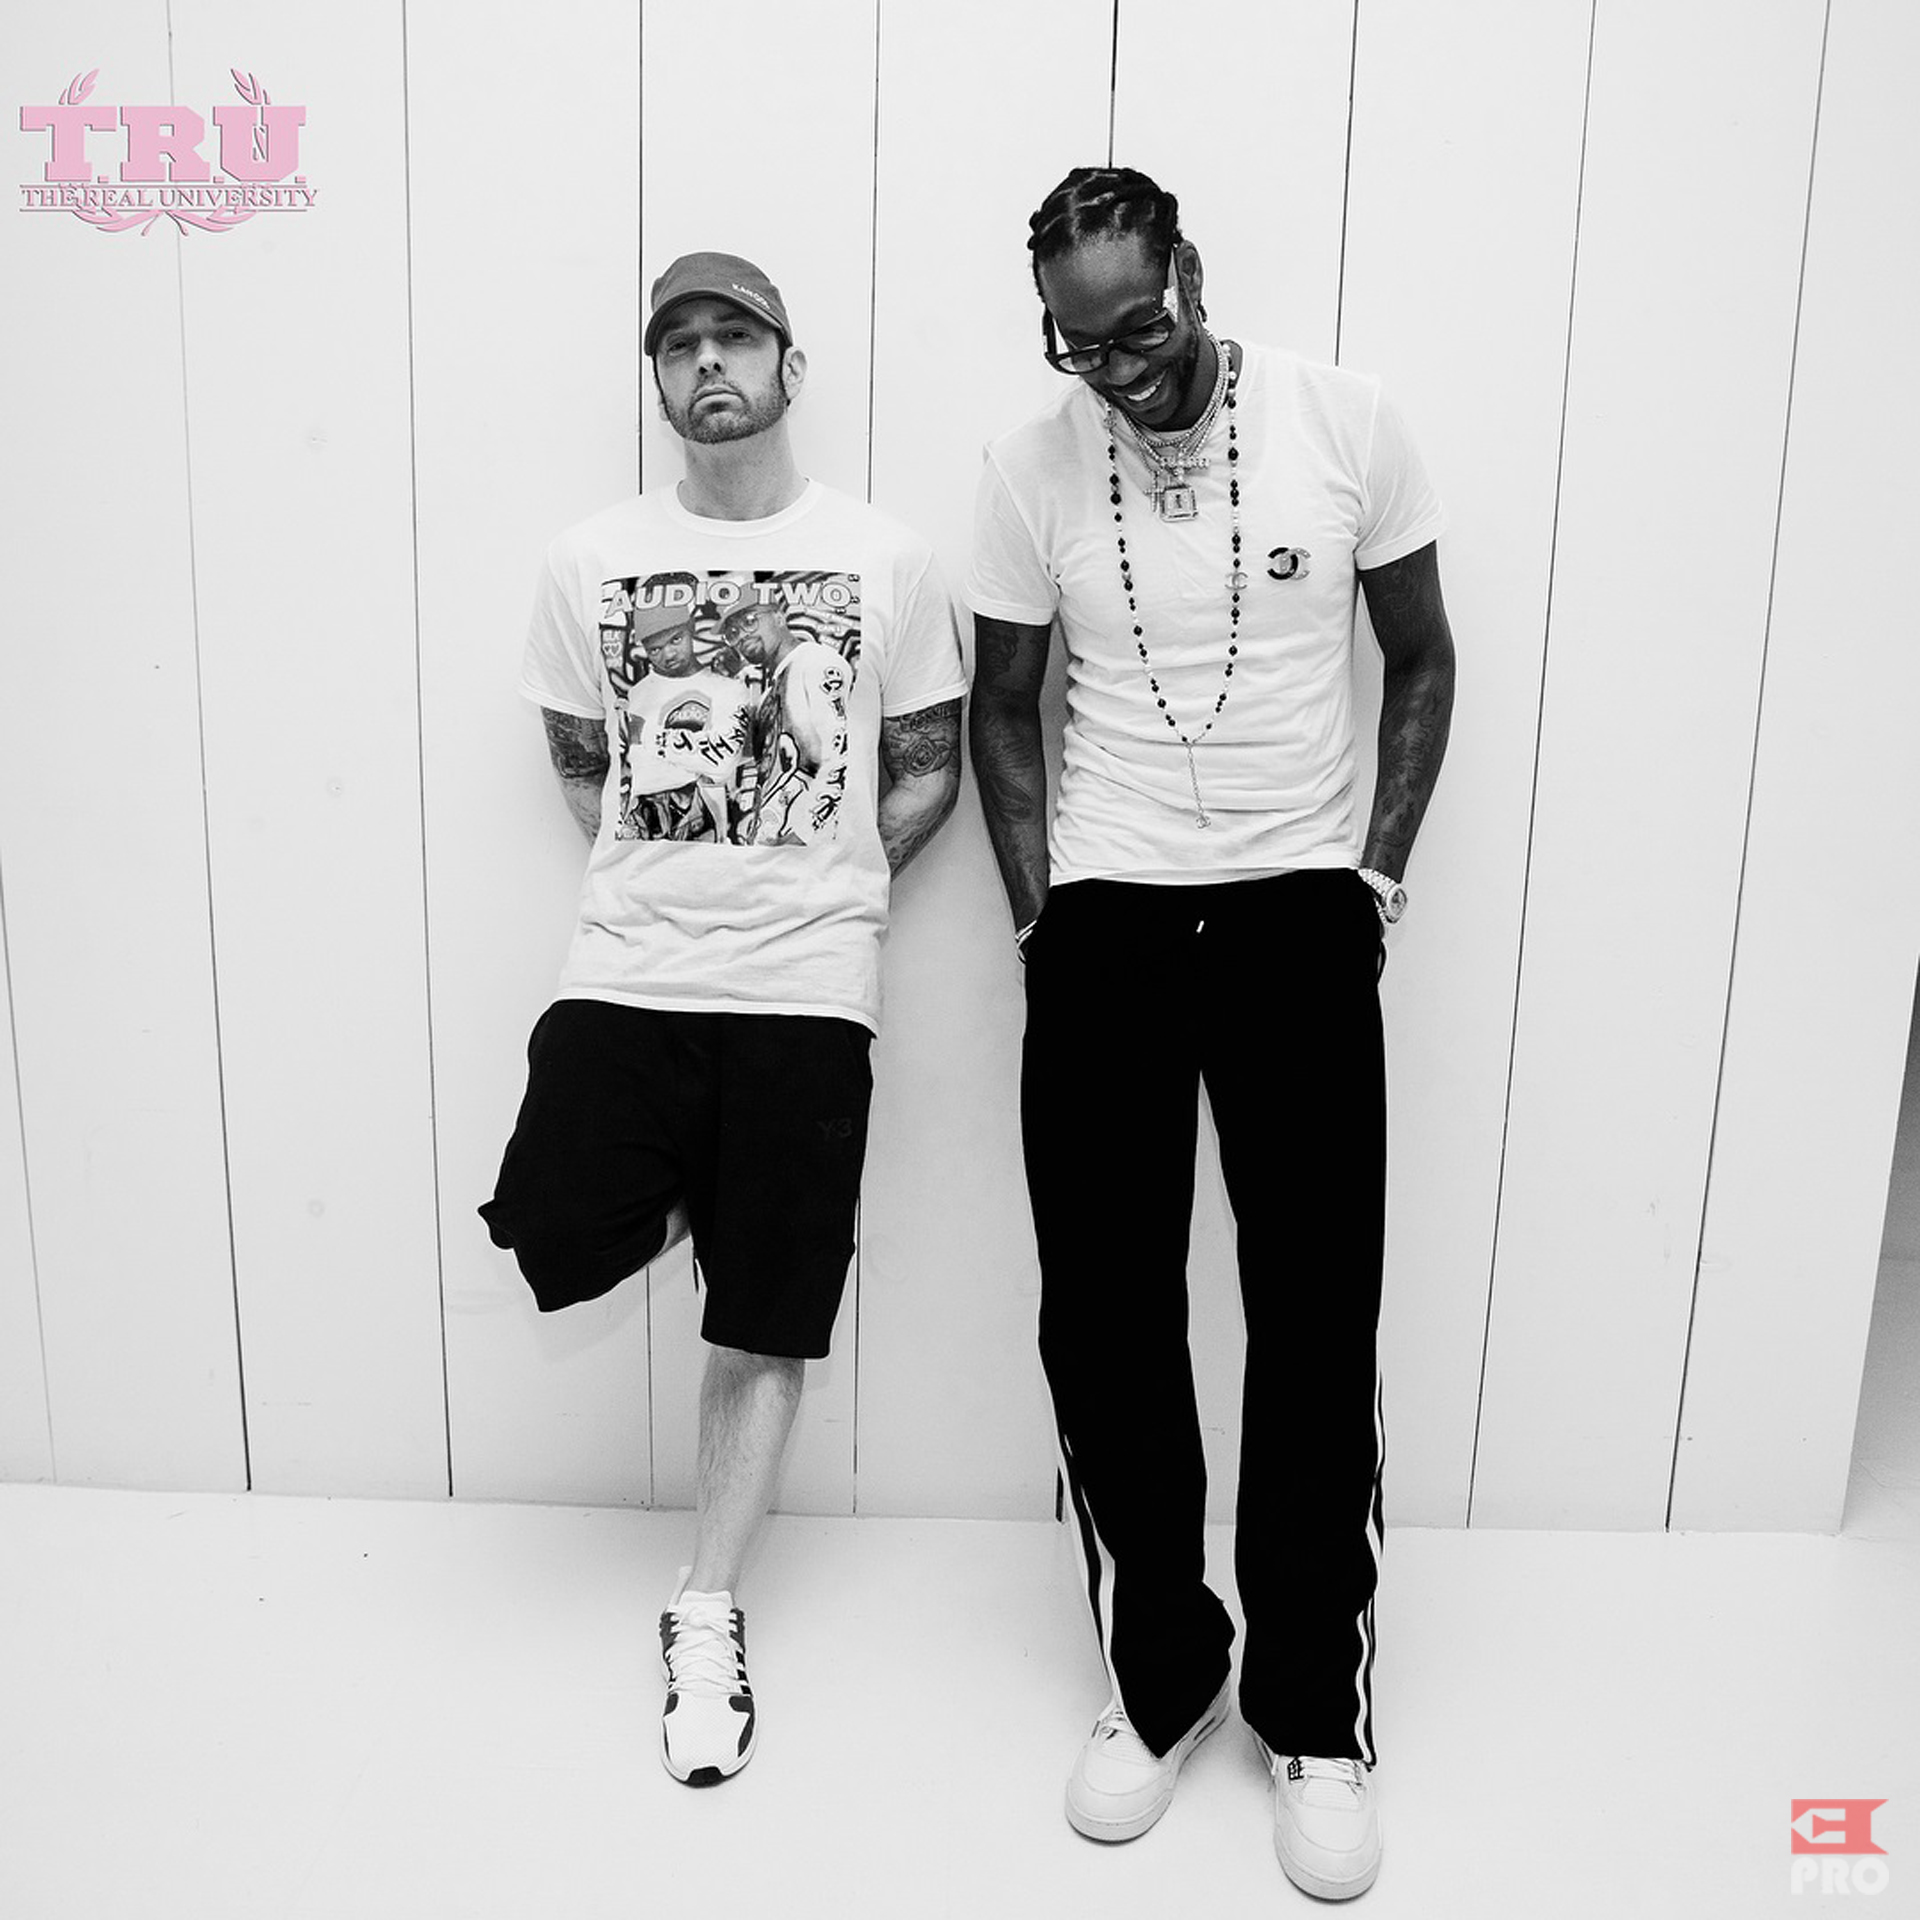 2017.06.24 - Eminem and 2 Chainz epro